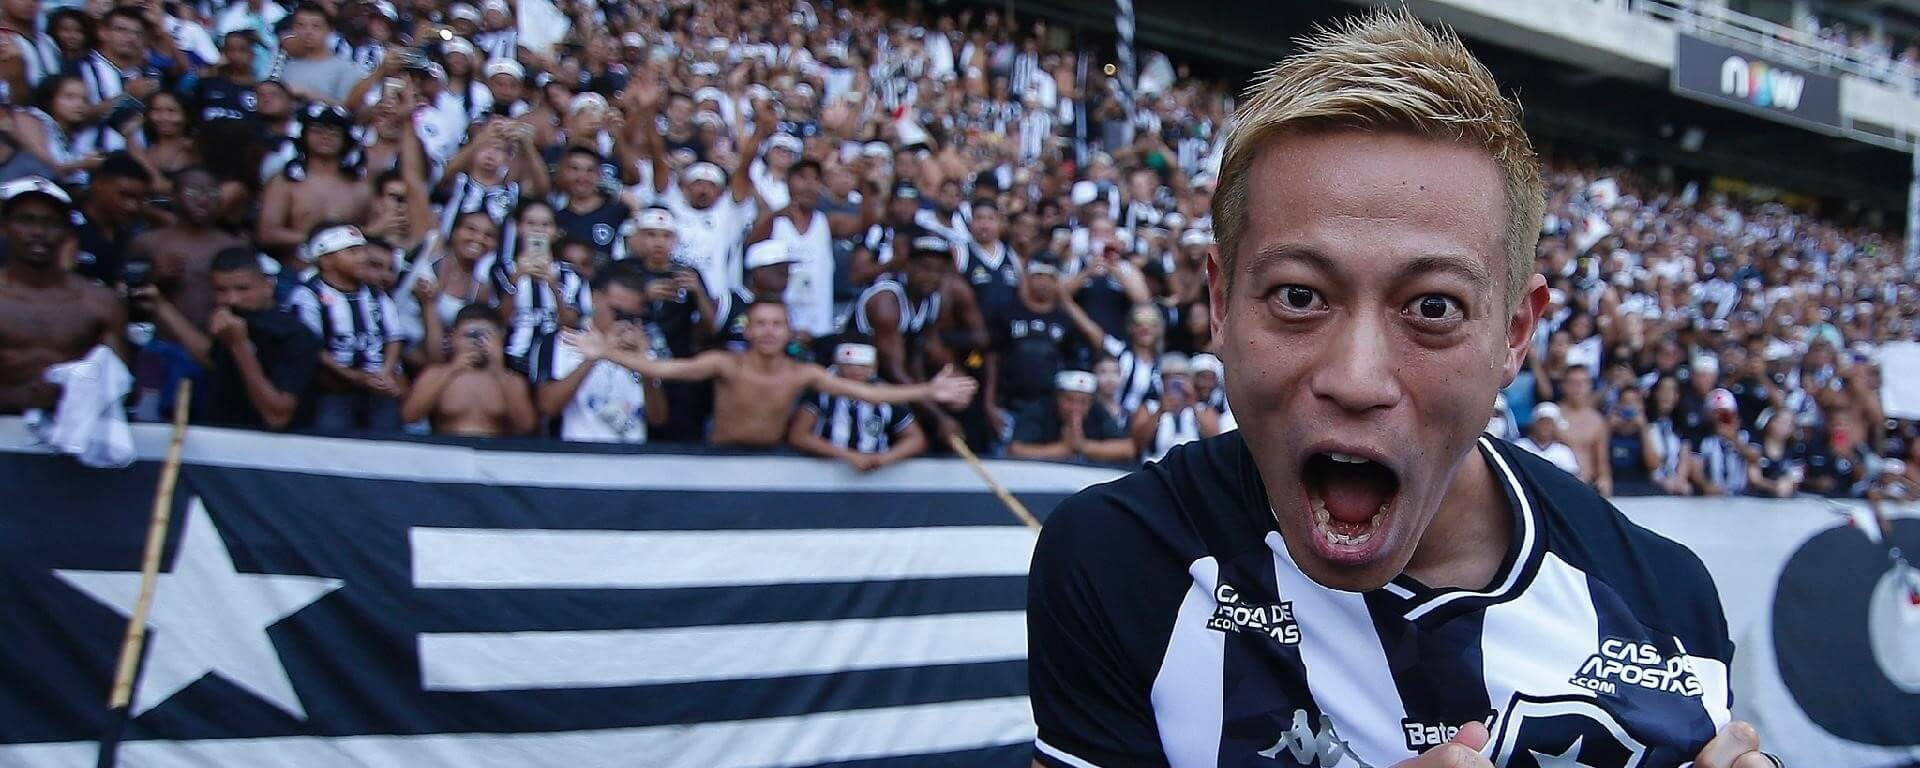 Botafogo player Keisuke Honda launches his own cryptocurrency 15